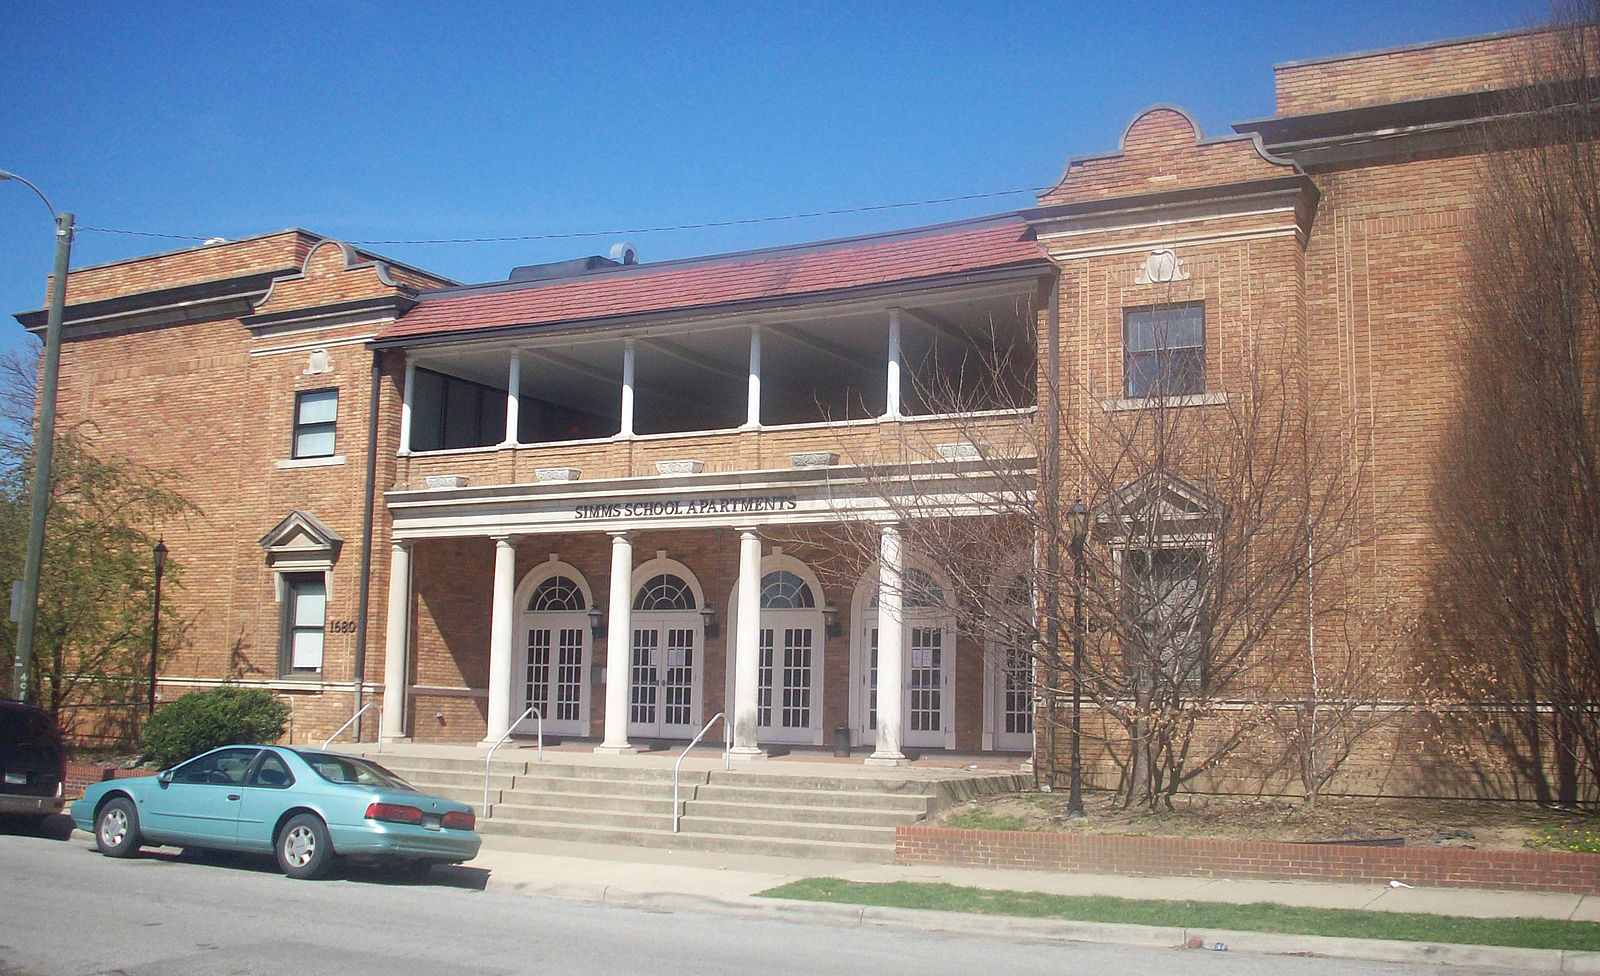 The former school, now Simms School Apartments